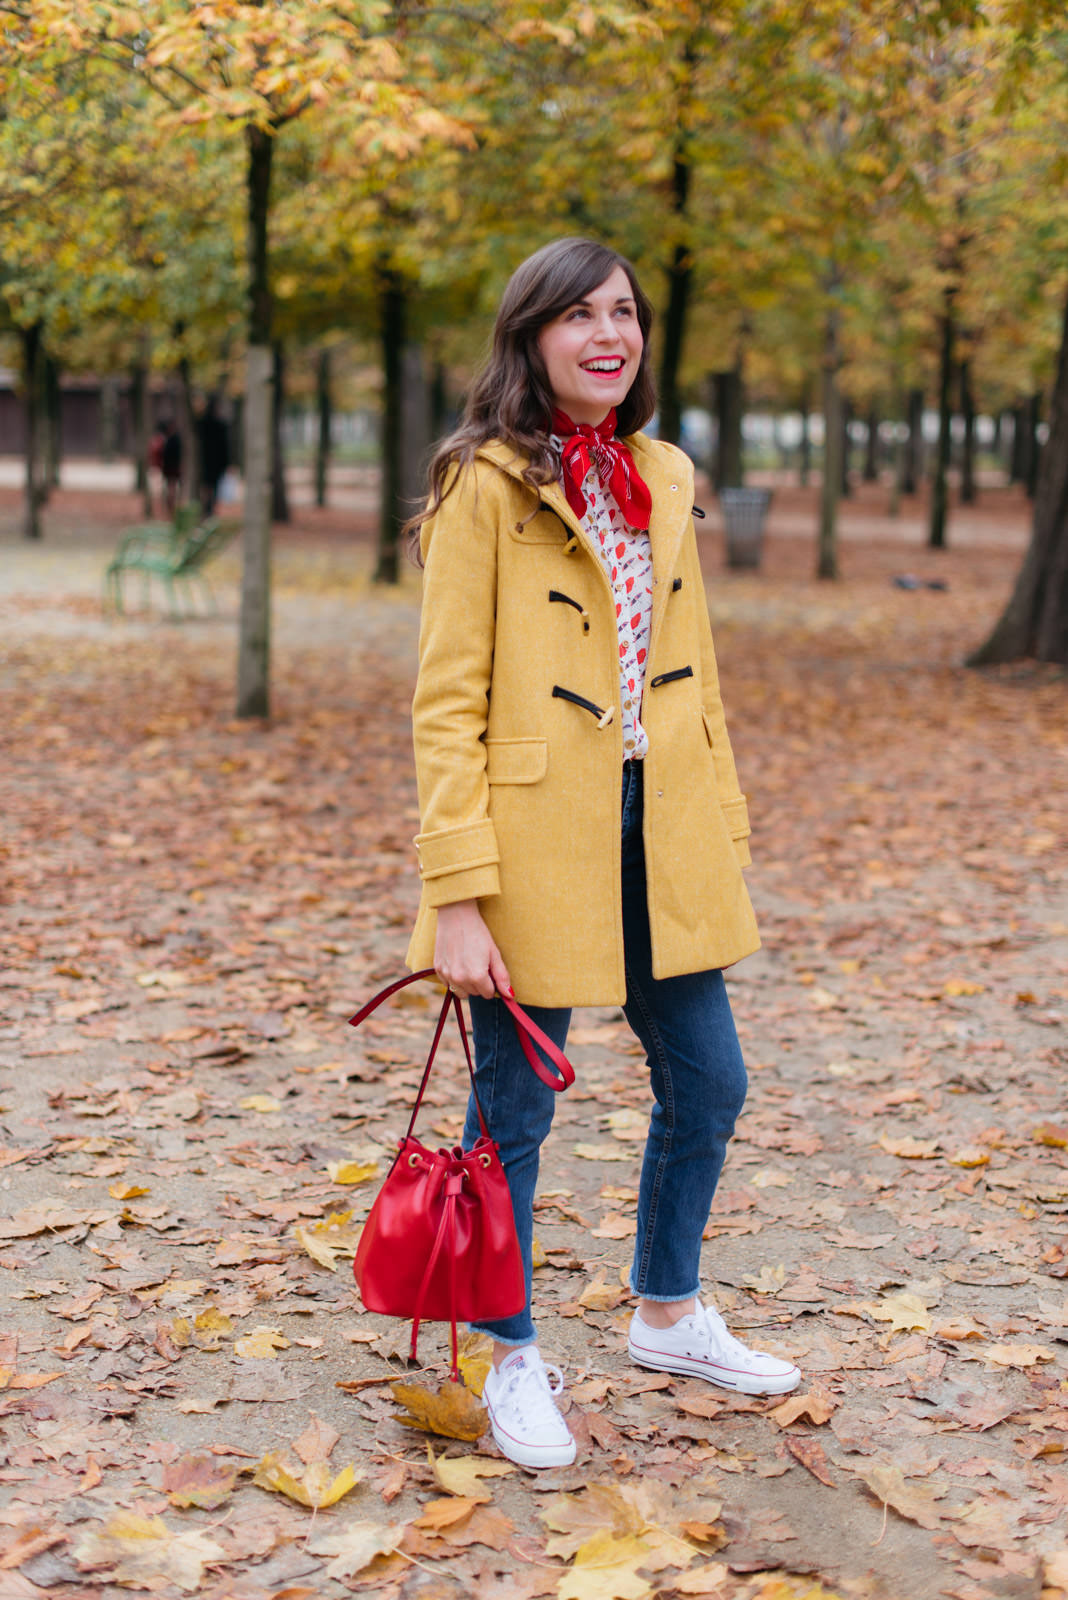 Blog-Mode-And-The-City-Lokks-Fille-de-Automne-6